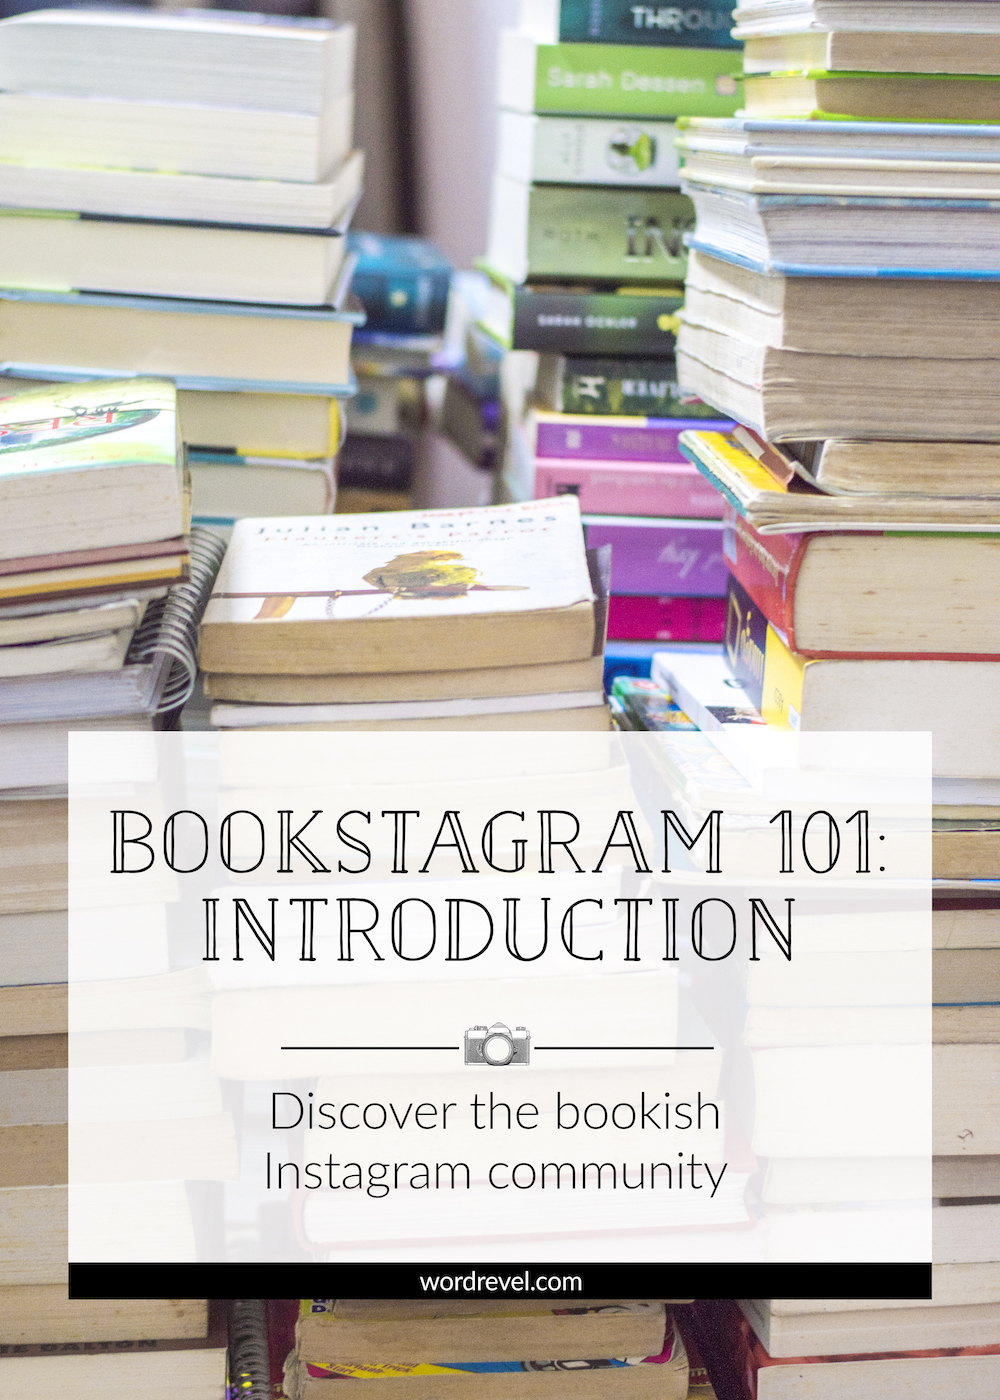 Bookstagram 101: Introduction — Discover the bookish Instagram community | wordrevel.com